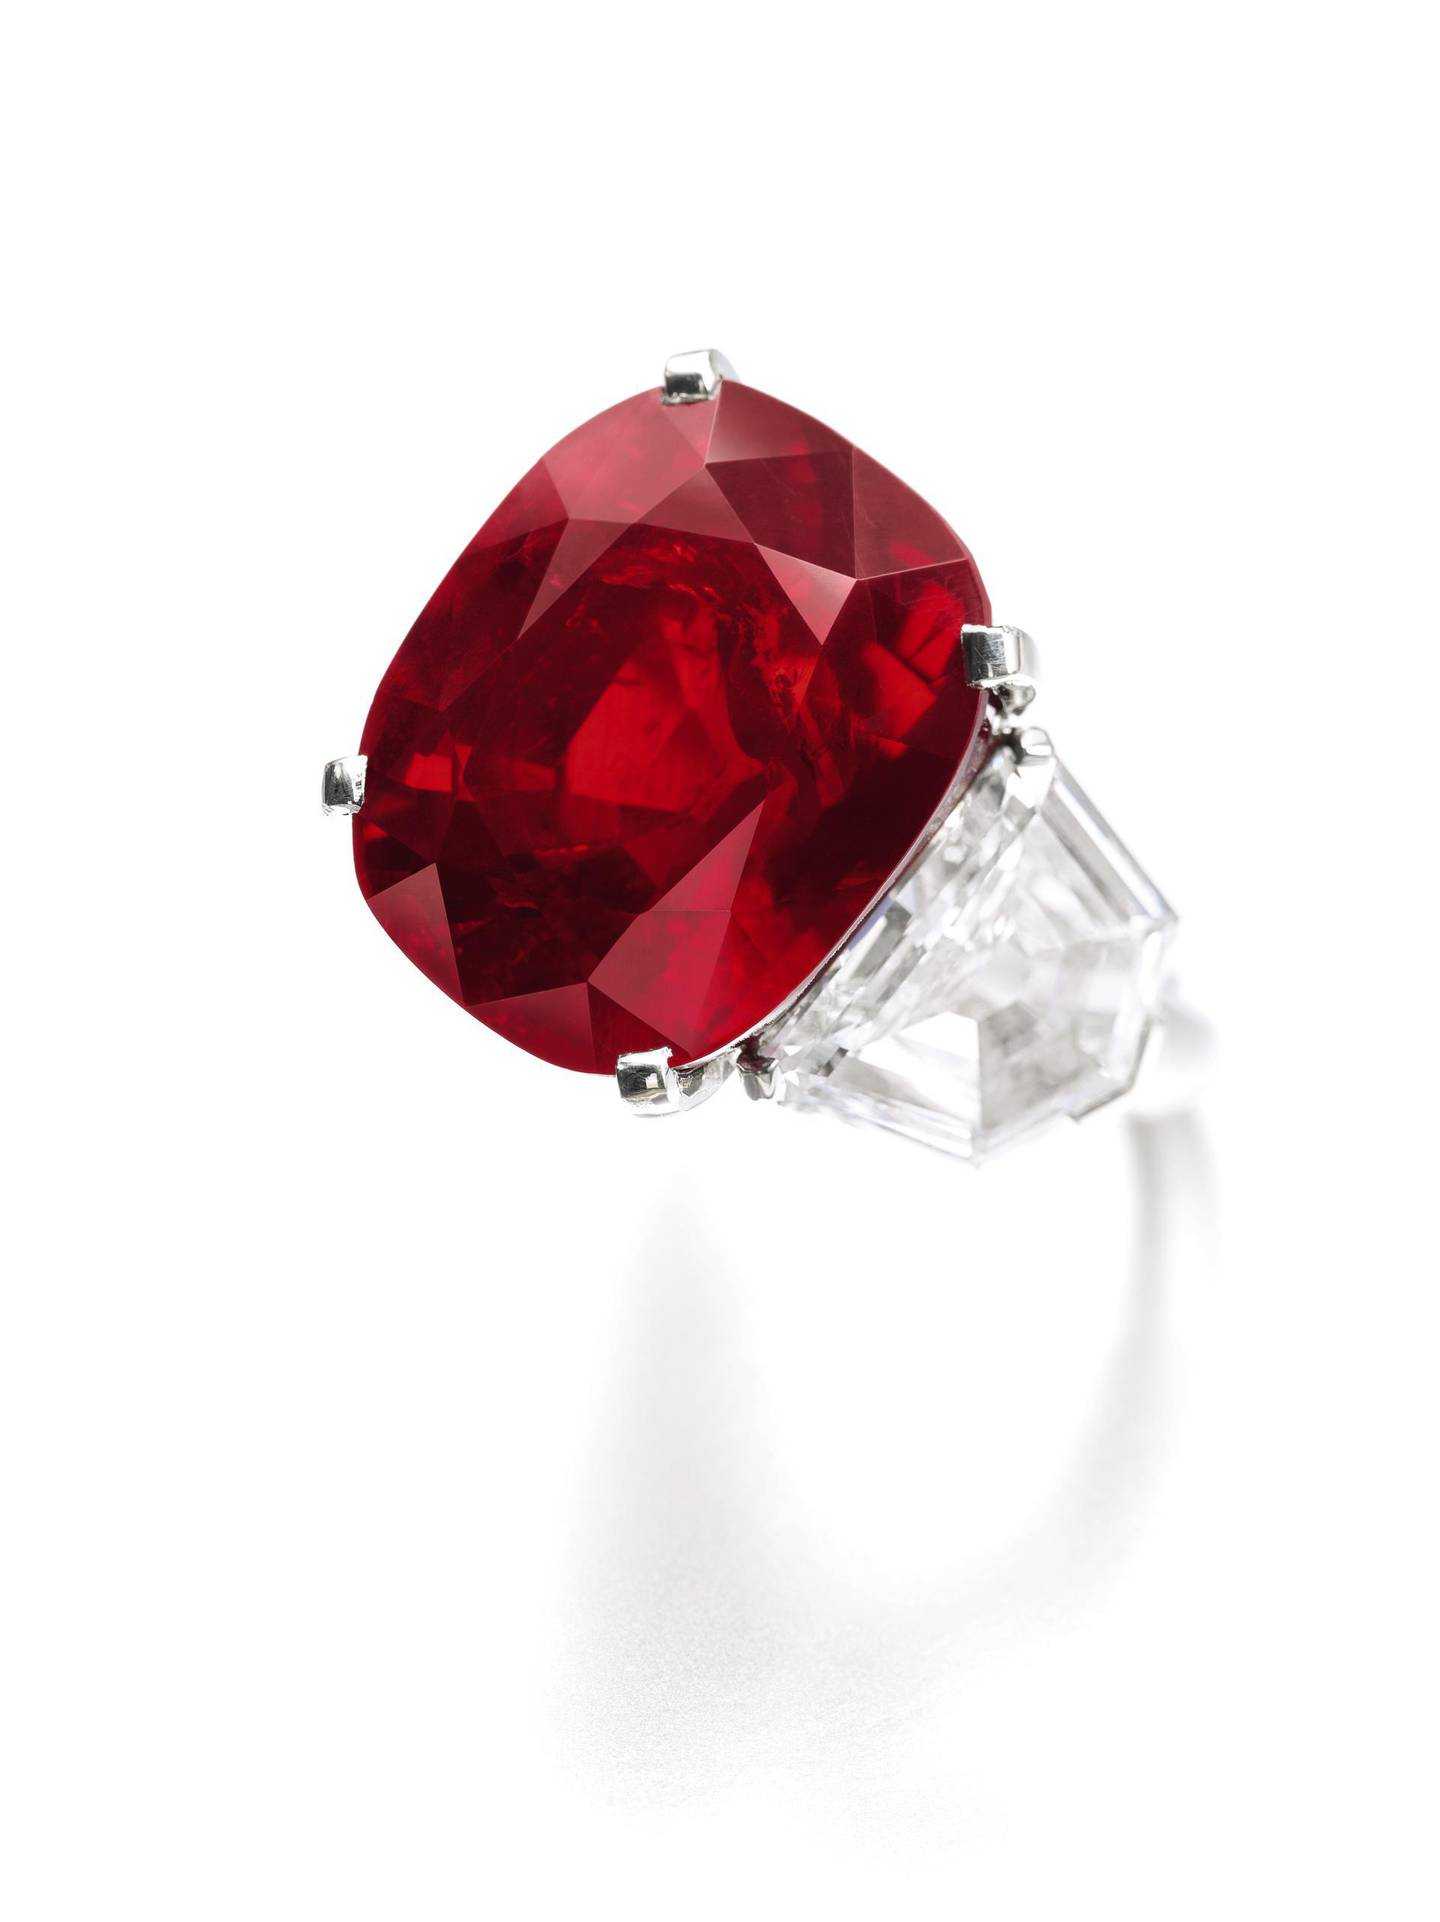 LOT 502 Property of a Lady 'The Sunrise Ruby', A superb and extremely rare ruby and diamond ring weighing 25.59 carats, Cartier Estimate: CHF 11,700,000-17,500,000 / US$ 12,000,000-18,000,000 Sold for CHF 28,250,000 (US$ 30,335,698) CREDIT: Sotheby's *** Local Caption ***  al99 sothebys BLOG 2.jpeg